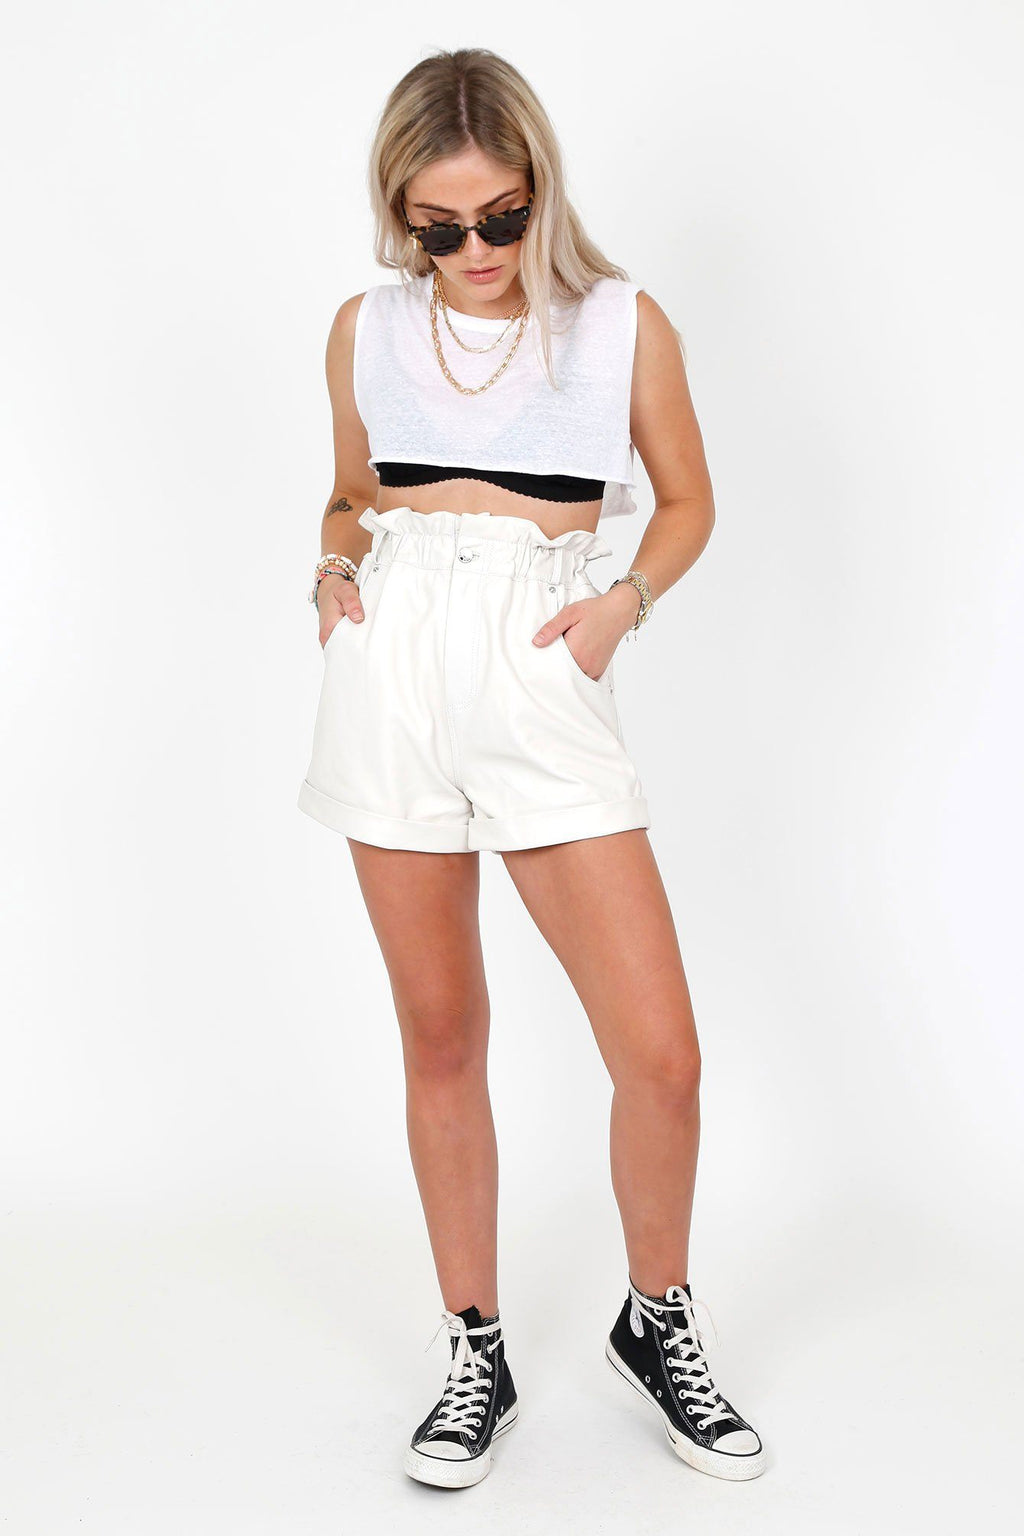 GRLFRND | Shea Leather Shorts - Bone